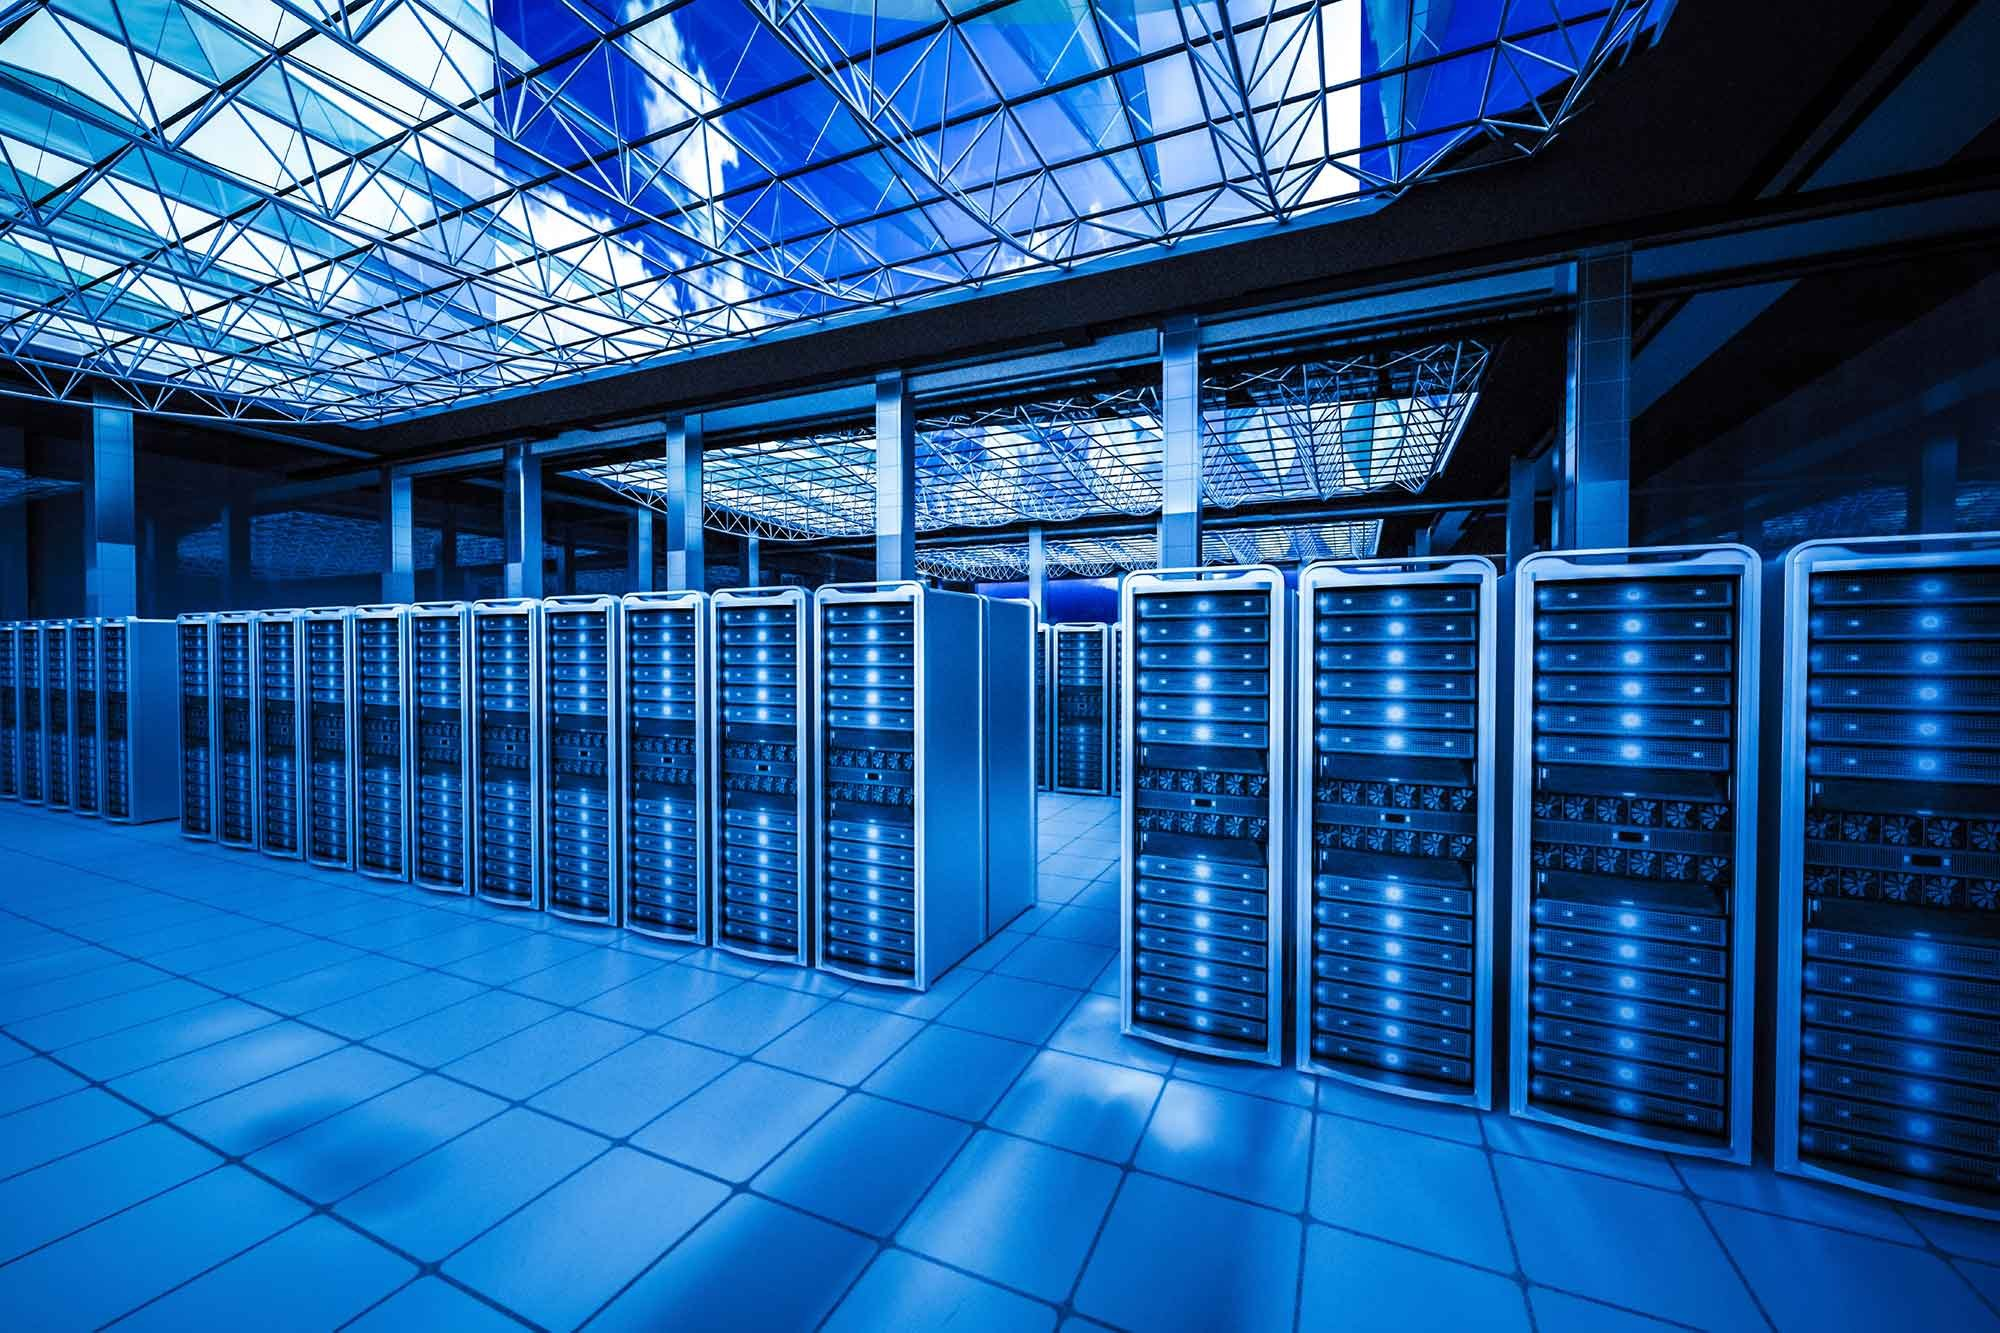 ciscos compelling vision for the data center includes ucs - HD1442×961